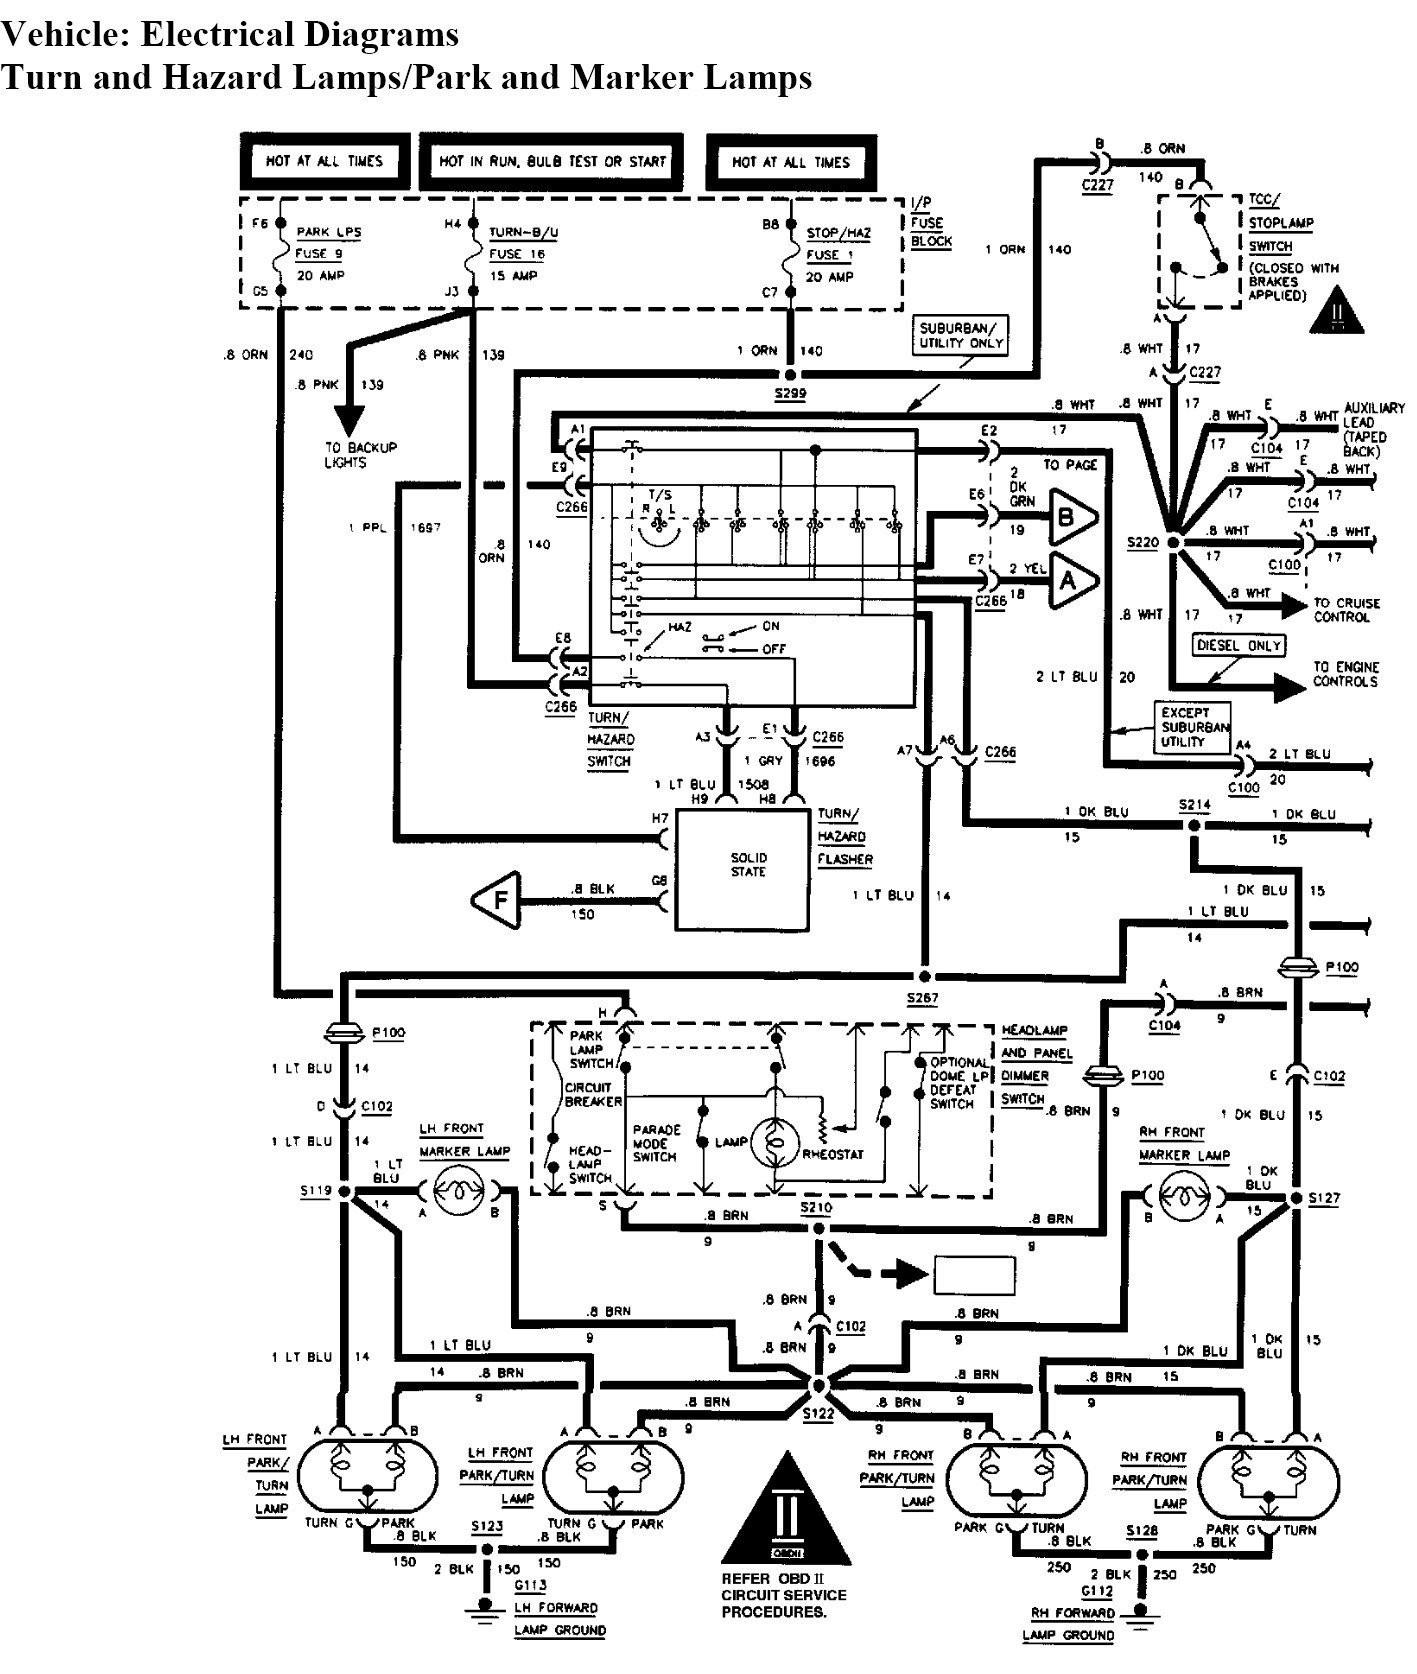 jeep grand cherokee exhaust system diagram schematic diagrams 2000 jeep  grand cherokee limited parts manual 2000